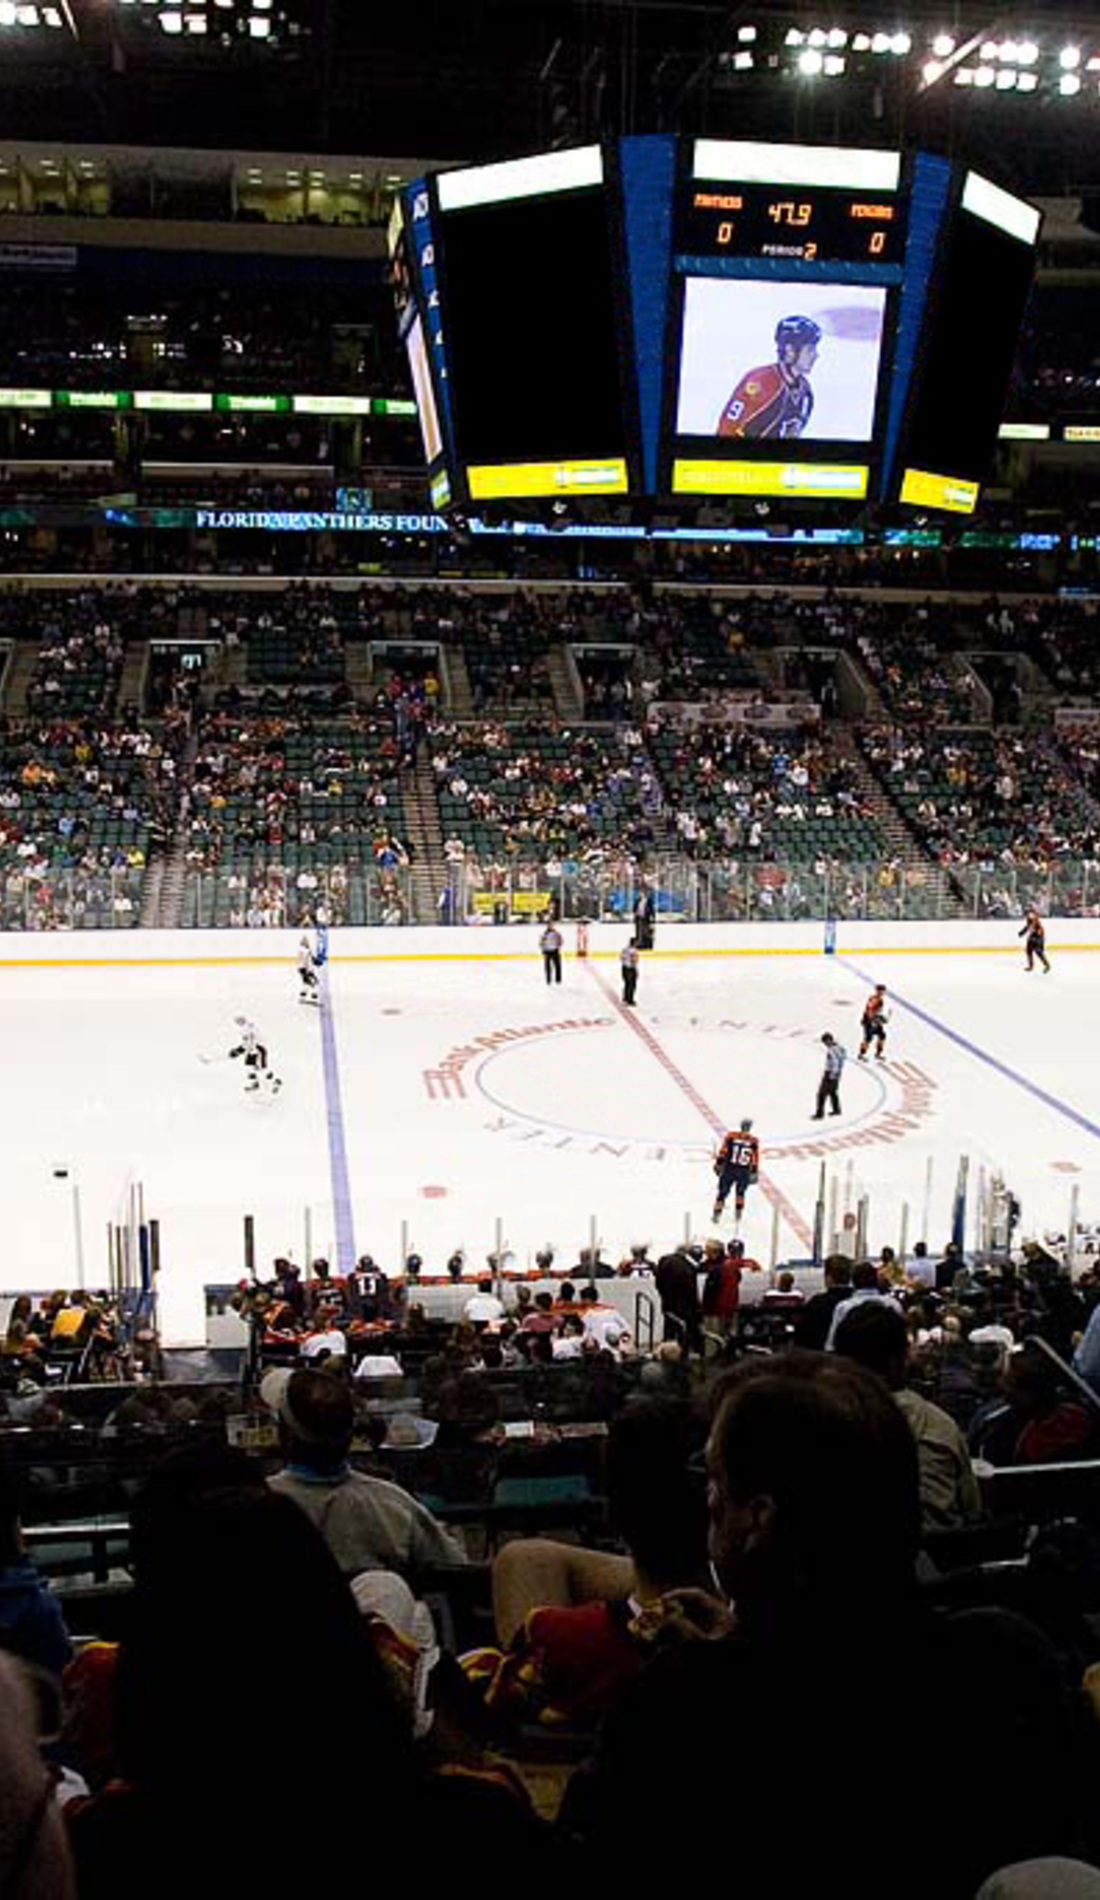 A Florida Panthers live event